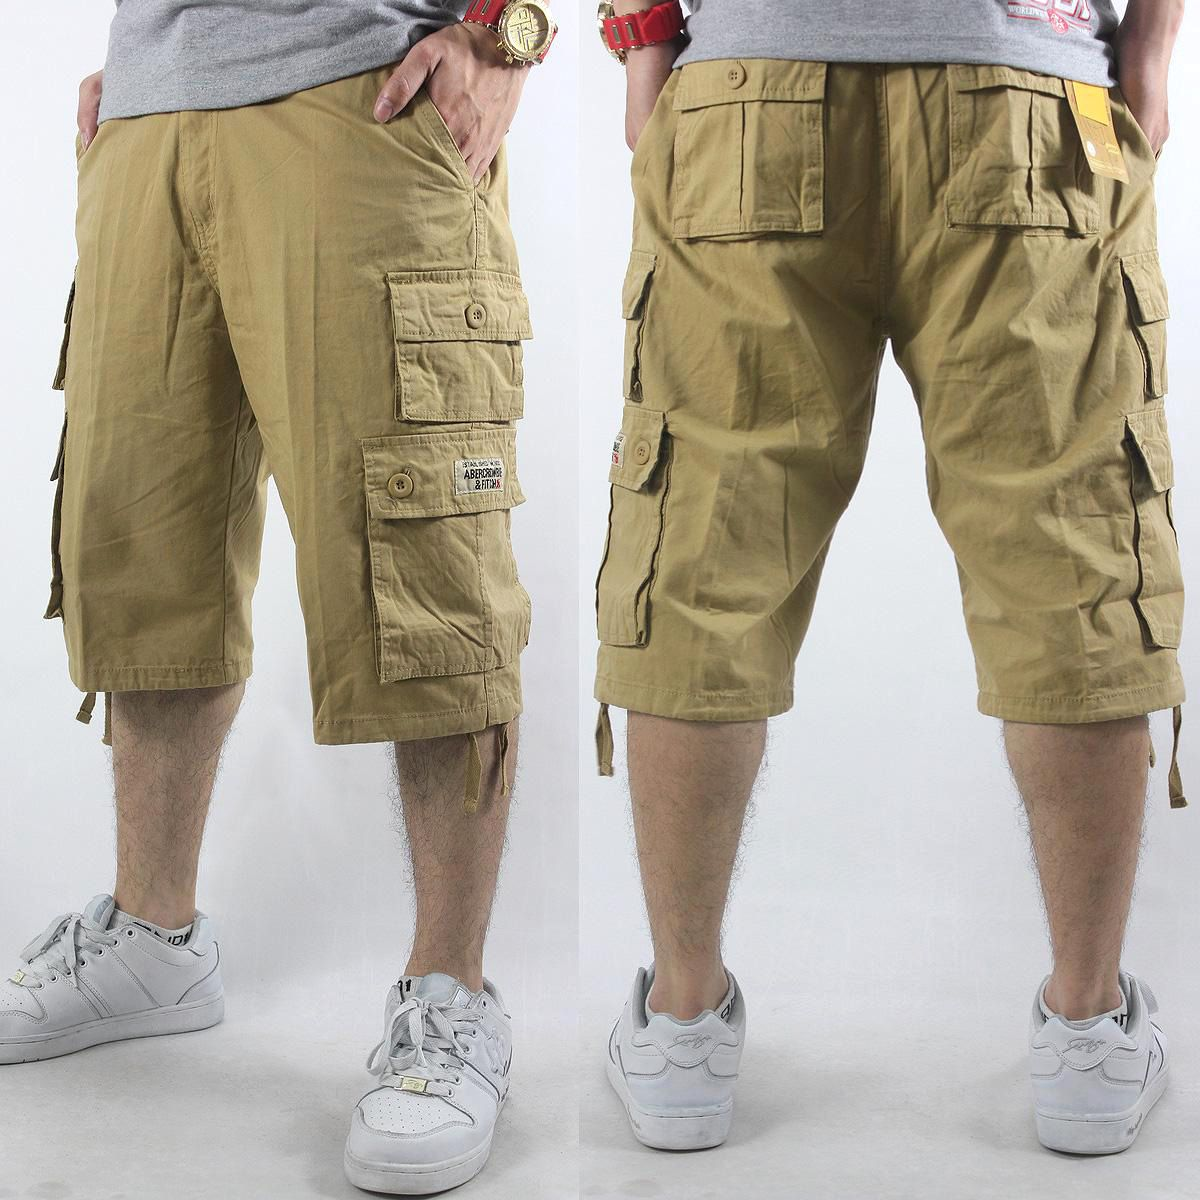 Best Mens Cargo Shorts Pictures | Yes i can, Men casual and Search